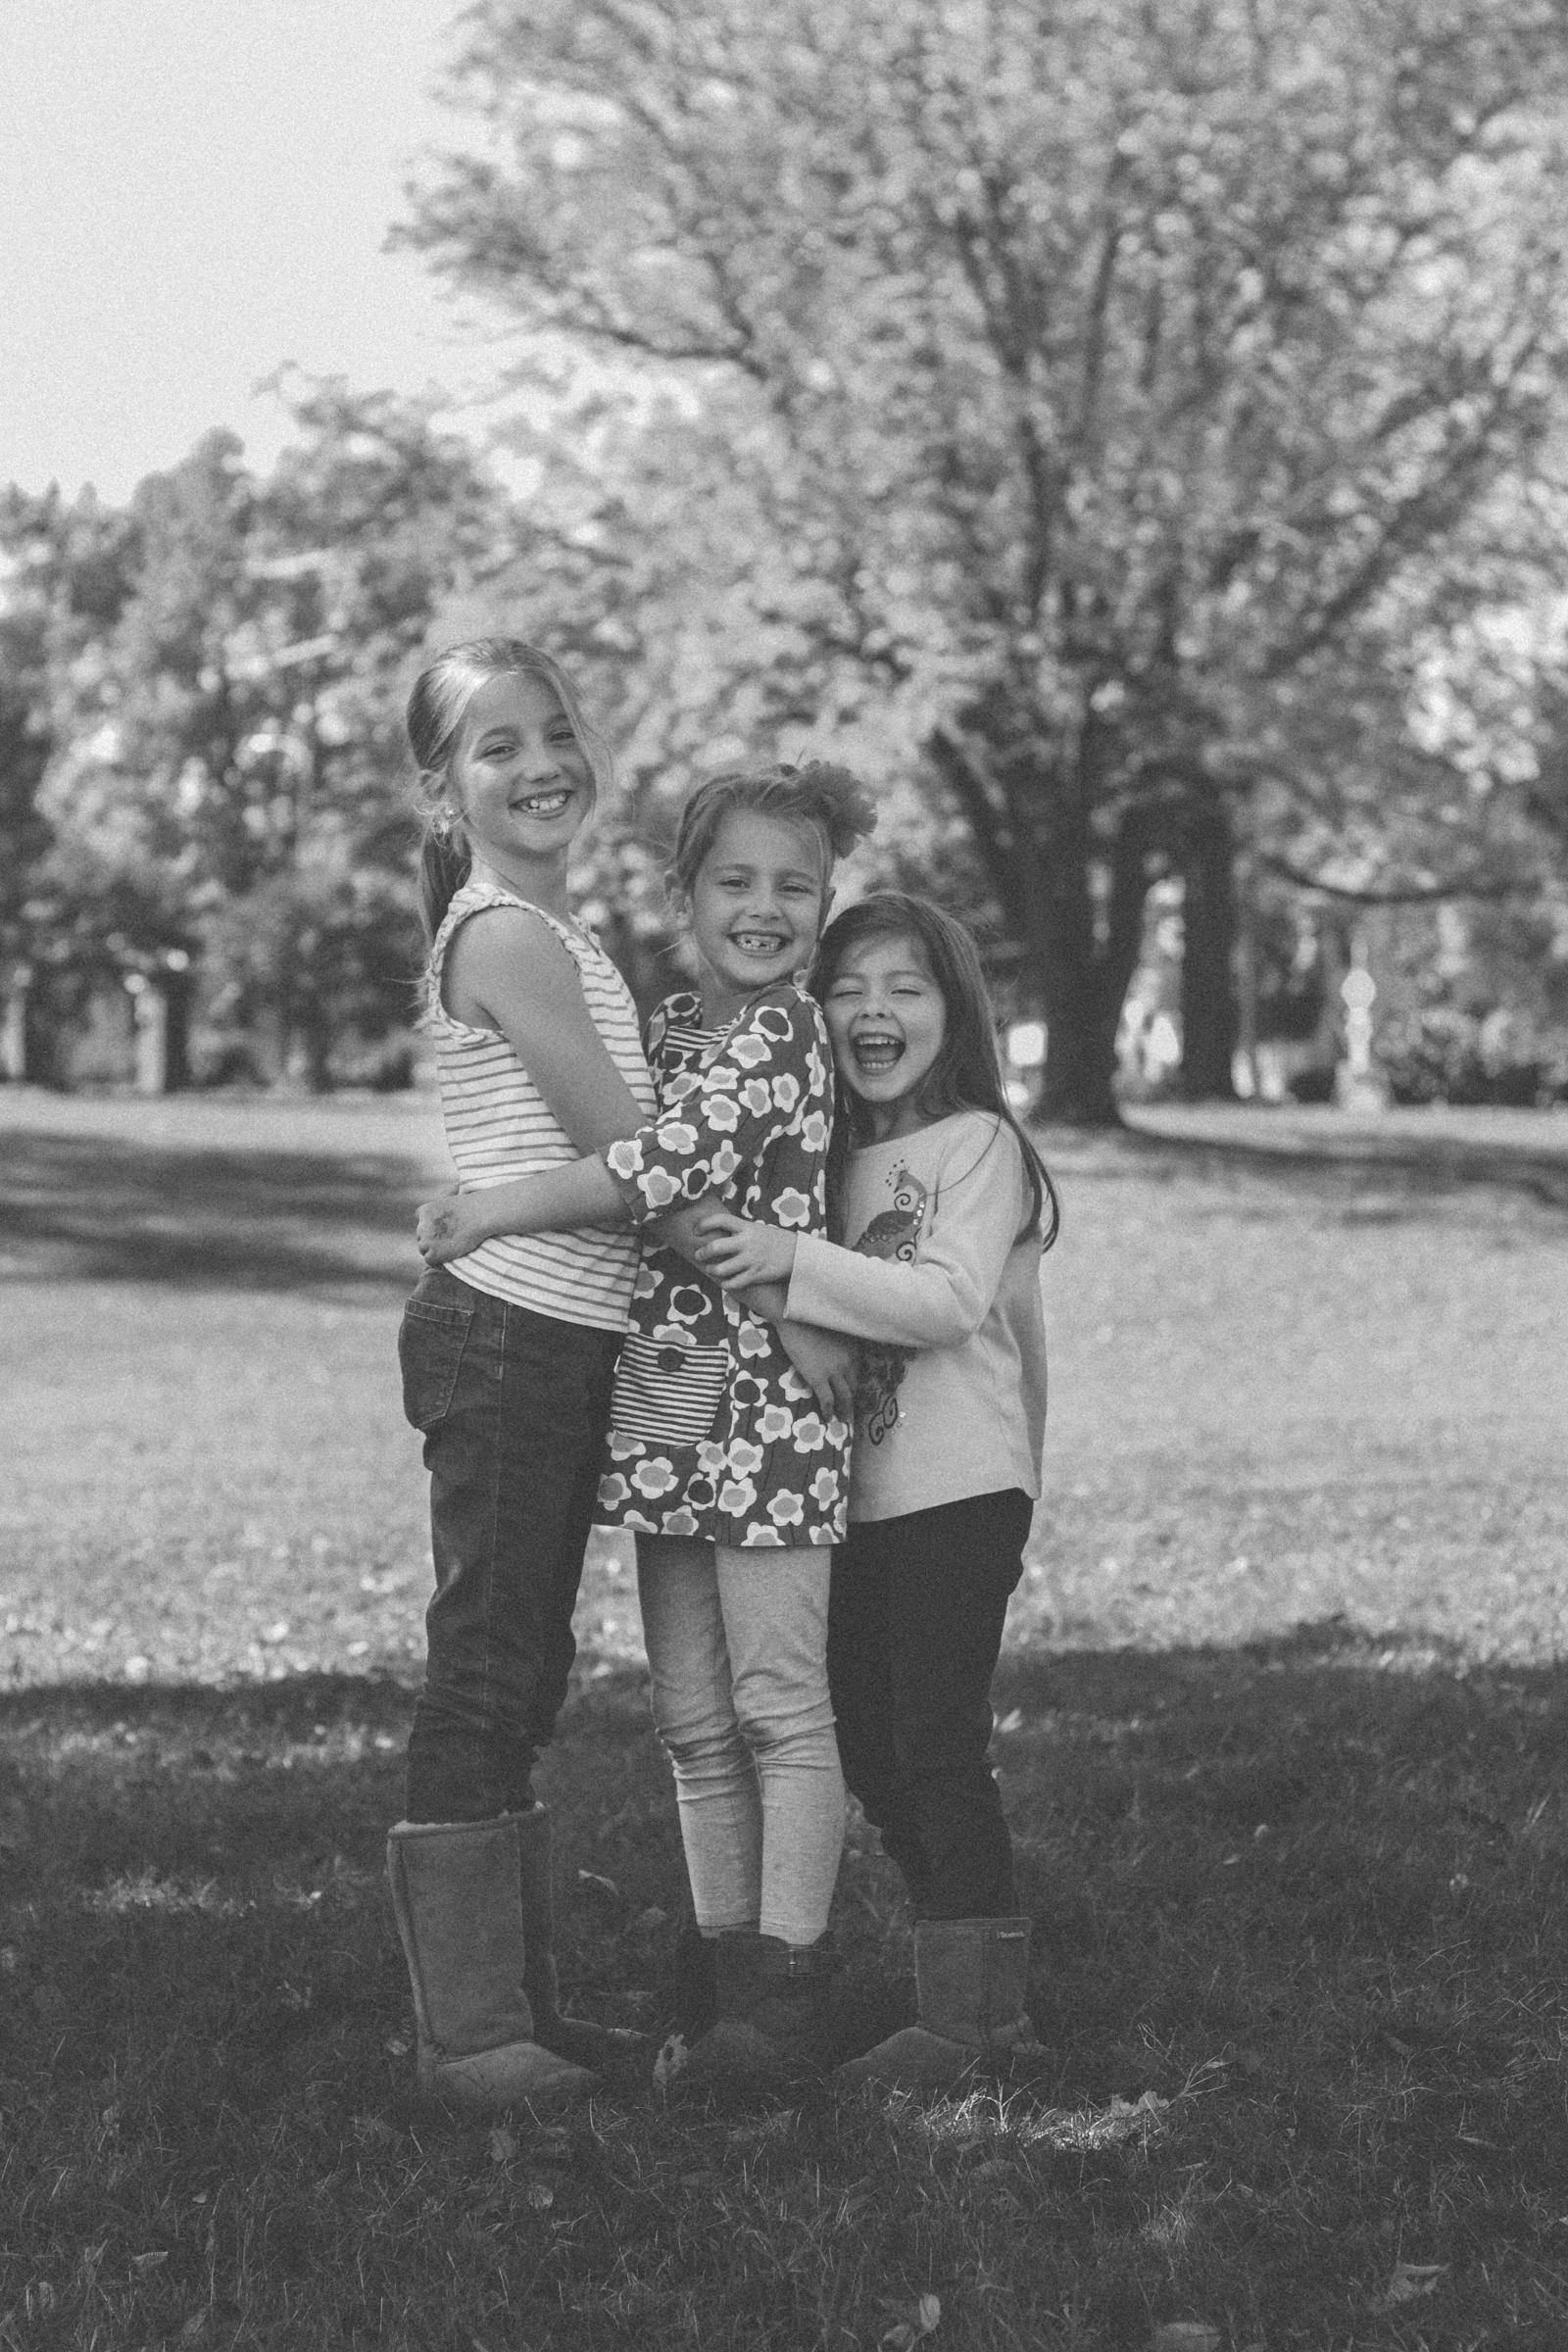 To wrap up I wanted to share some B&W's of the three girls I nanny for. This is my third year watching them and I've gotten to capture bits of their growing up and man is that a crazy thing to experience! It's bittersweet to watch the girls grow older cause of how drastically different each year gets. We went from snuggling and reading books everyday after school to rushing out the door the minute they get off the bus to scramble to 2,816 activities. As important as these girls are to me I am reminded when I look at these photos just how important photography is to me, but also how crucial it is in general. I start to get discouraged at the fact that there are so many photographers out there. I ask myself, am I really needed when thousands and thousands of people are doing the exact same thing as me? I actually just asked myself that last night while I lay awake in bed. And I am answering myself right now with a huge YES. Yes I am needed because these three girls are precious gifts from the Lord and if my only job, as far as photography goes, was to capture their beautiful lives growing older and wiser and more gorgeous each day that goes by then yes it would be worth my time and energy to be a photographer. Because some people do photography because it can make really good money. But a real artist will make, create and capture because we don't want to miss out on life and ourselves. Some people will look at their work and see money symbols. Others will look at their work and smile with pure joy. Have I mentioned how excited I am for 2016?